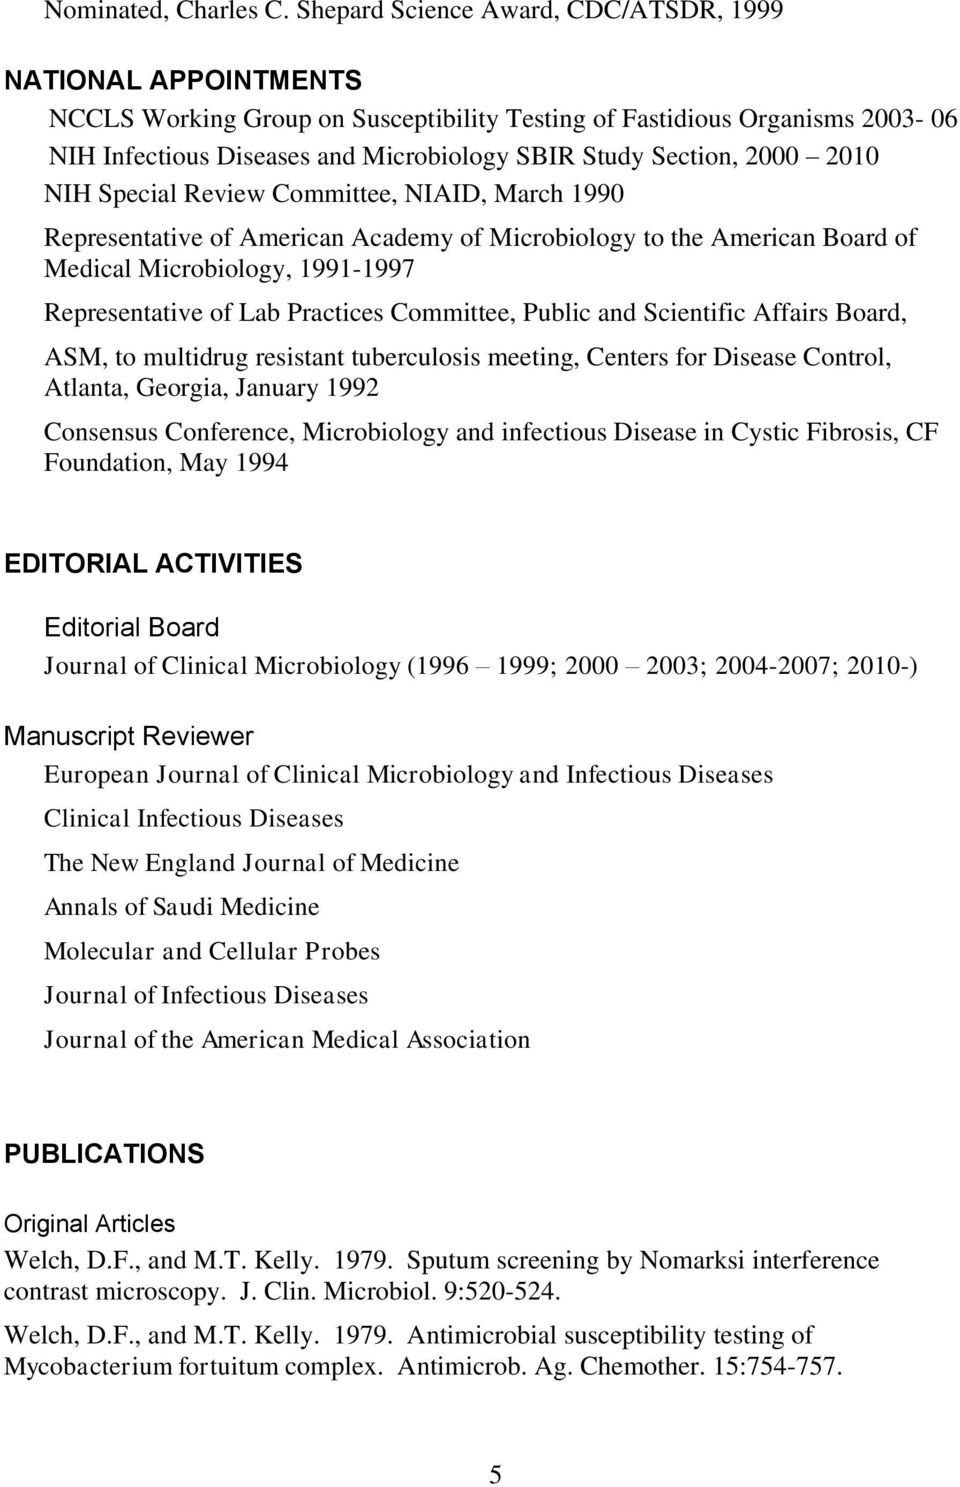 2000 2010 NIH Special Review Committee, NIAID, March 1990 Representative of American Academy of Microbiology to the American Board of Medical Microbiology, 1991-1997 Representative of Lab Practices